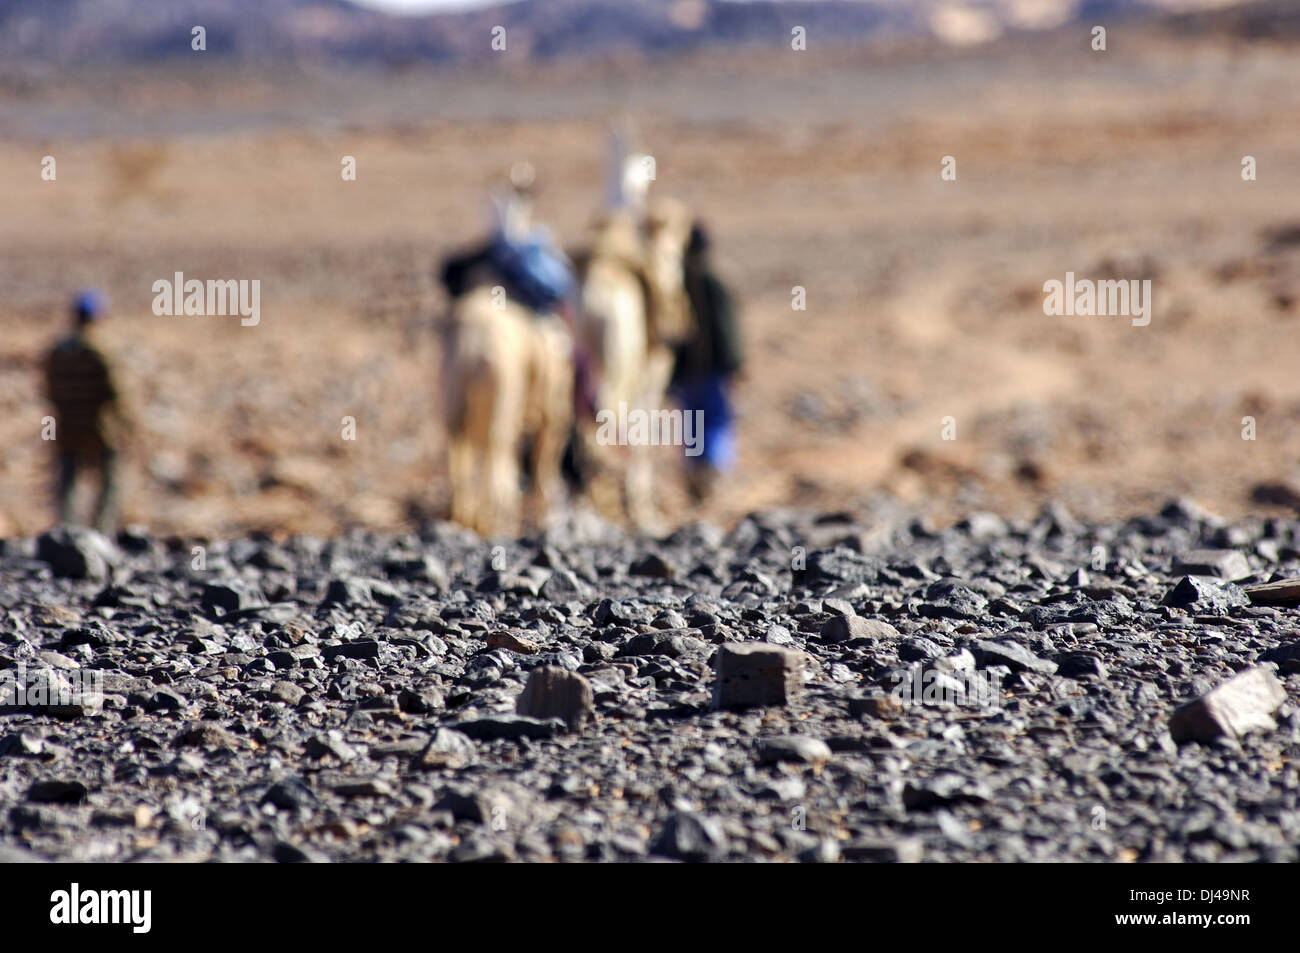 hot shimmering air blurring a camel caravane Stock Photo